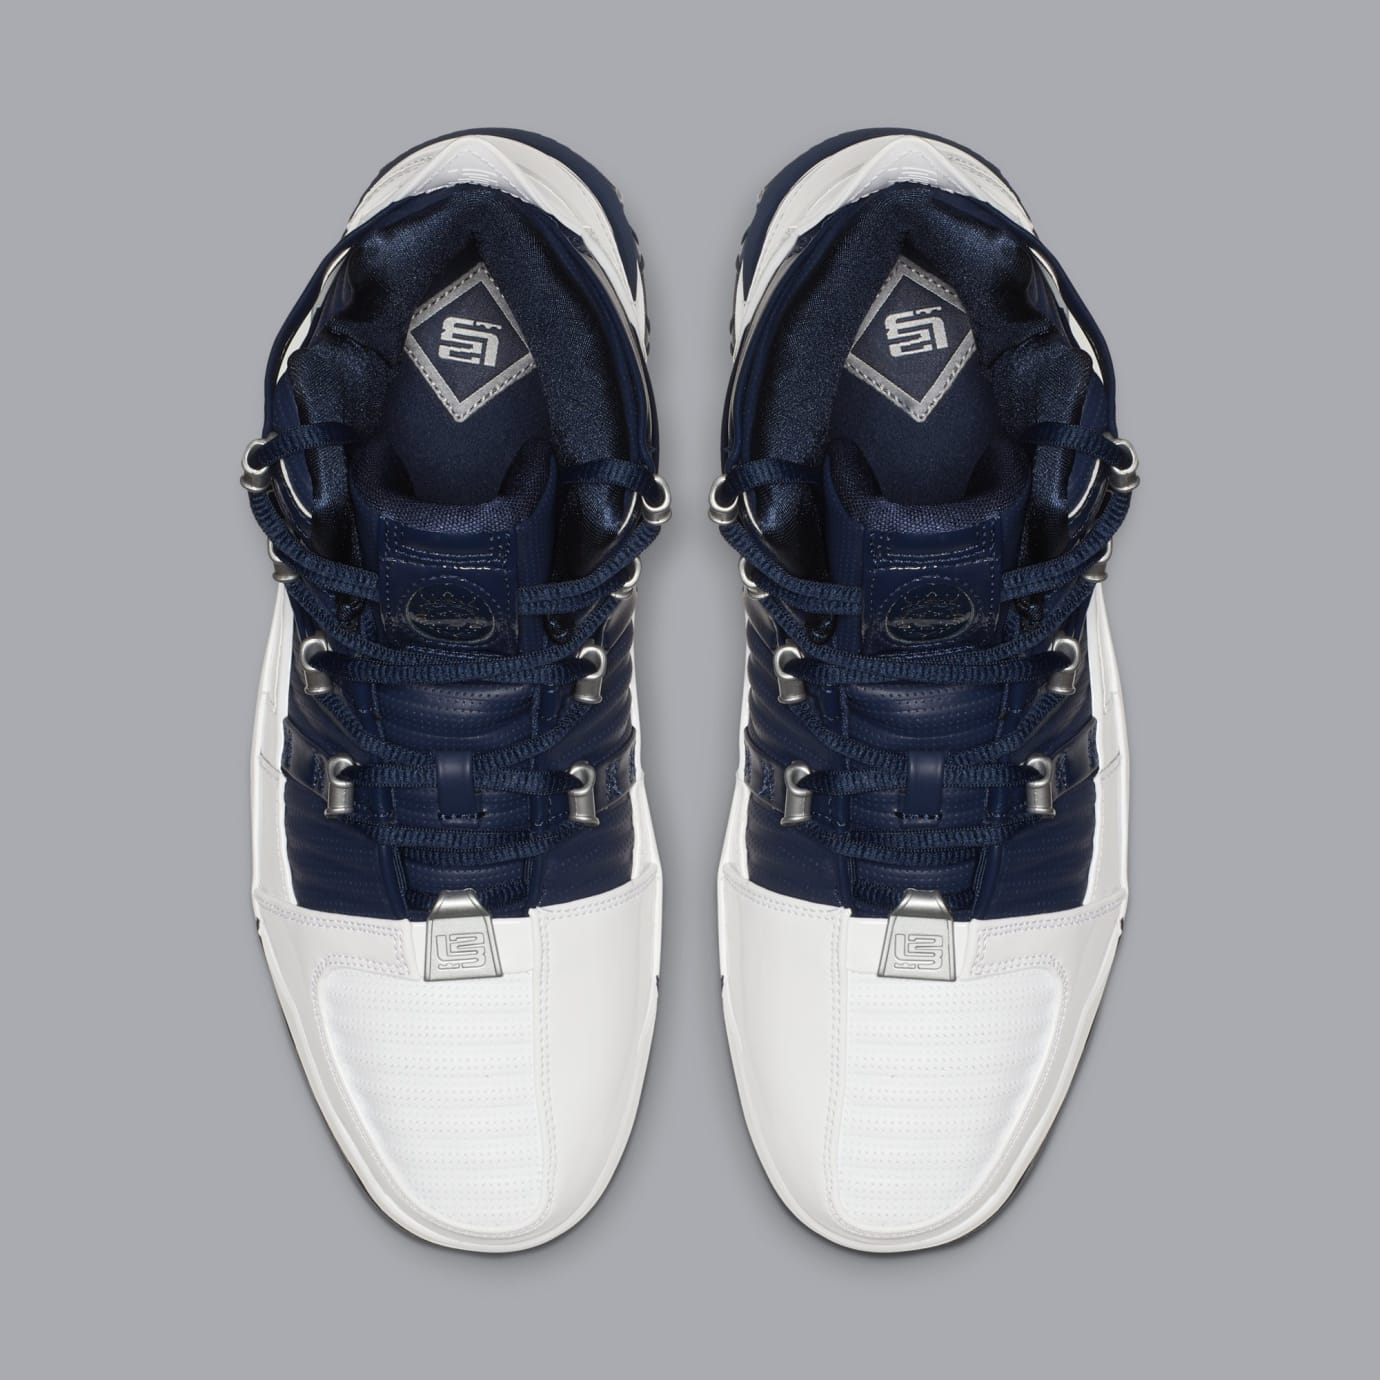 nike-zoom-lebron-3-white-navy-blue-silver-ao2434-103-top